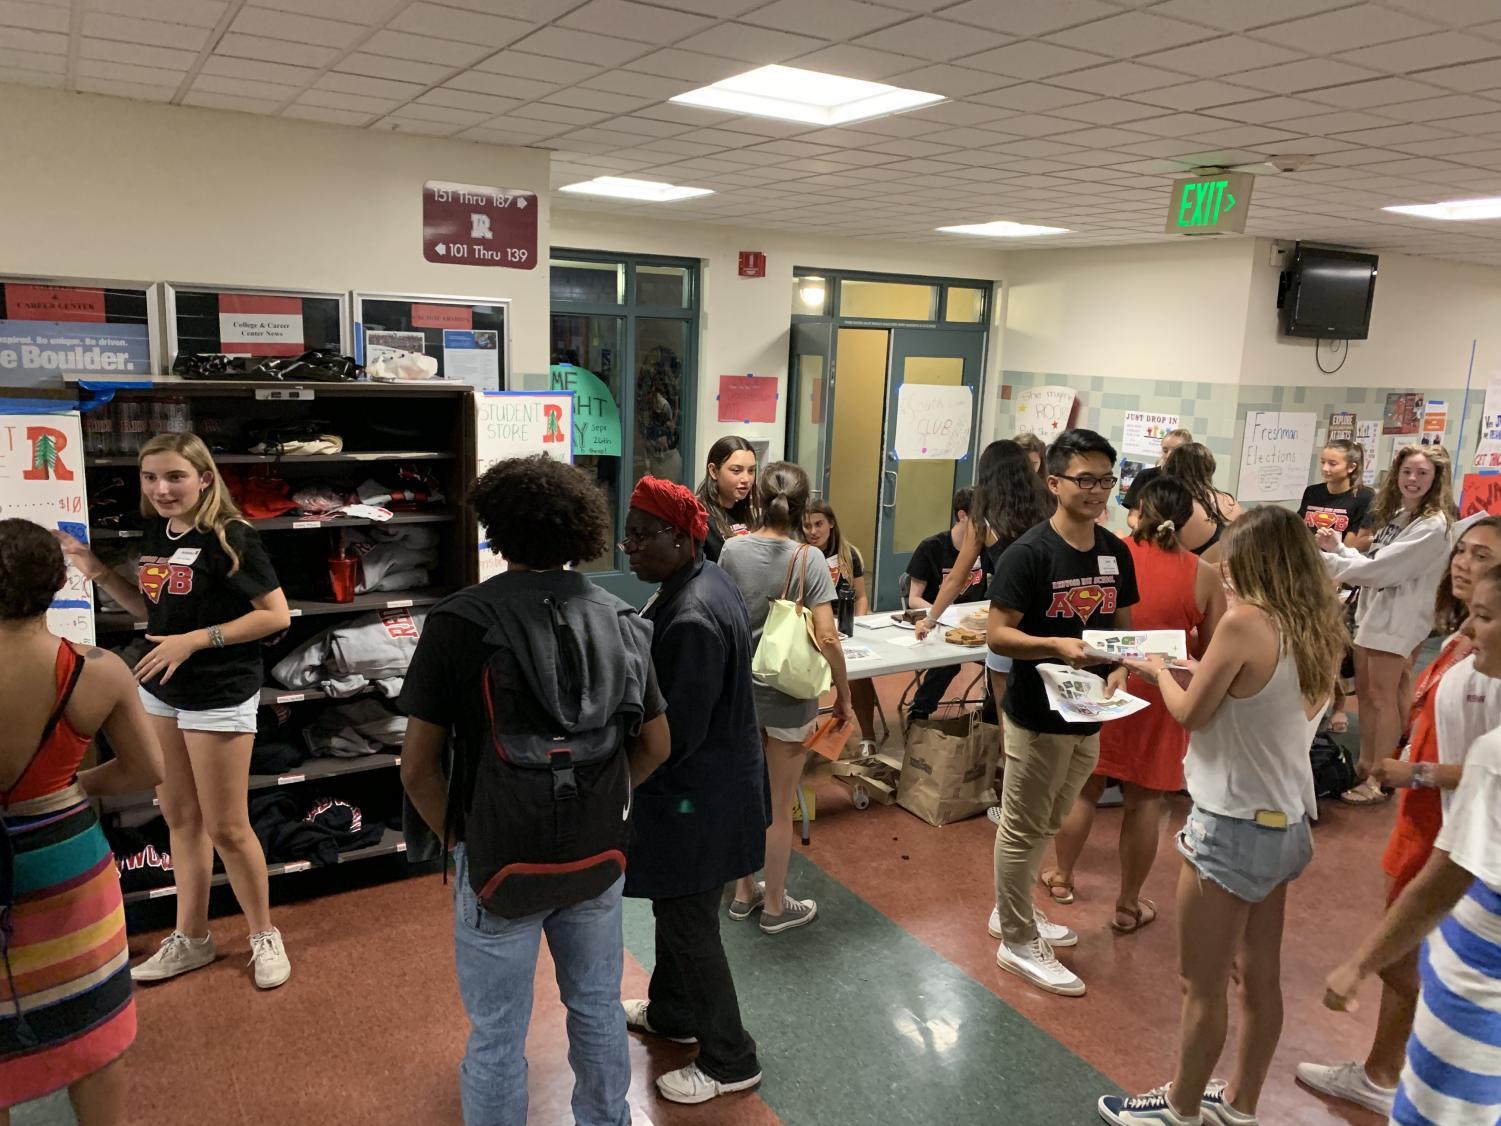 During the annual Back to School Night, Leadership students fundraise and lend a helping hand.